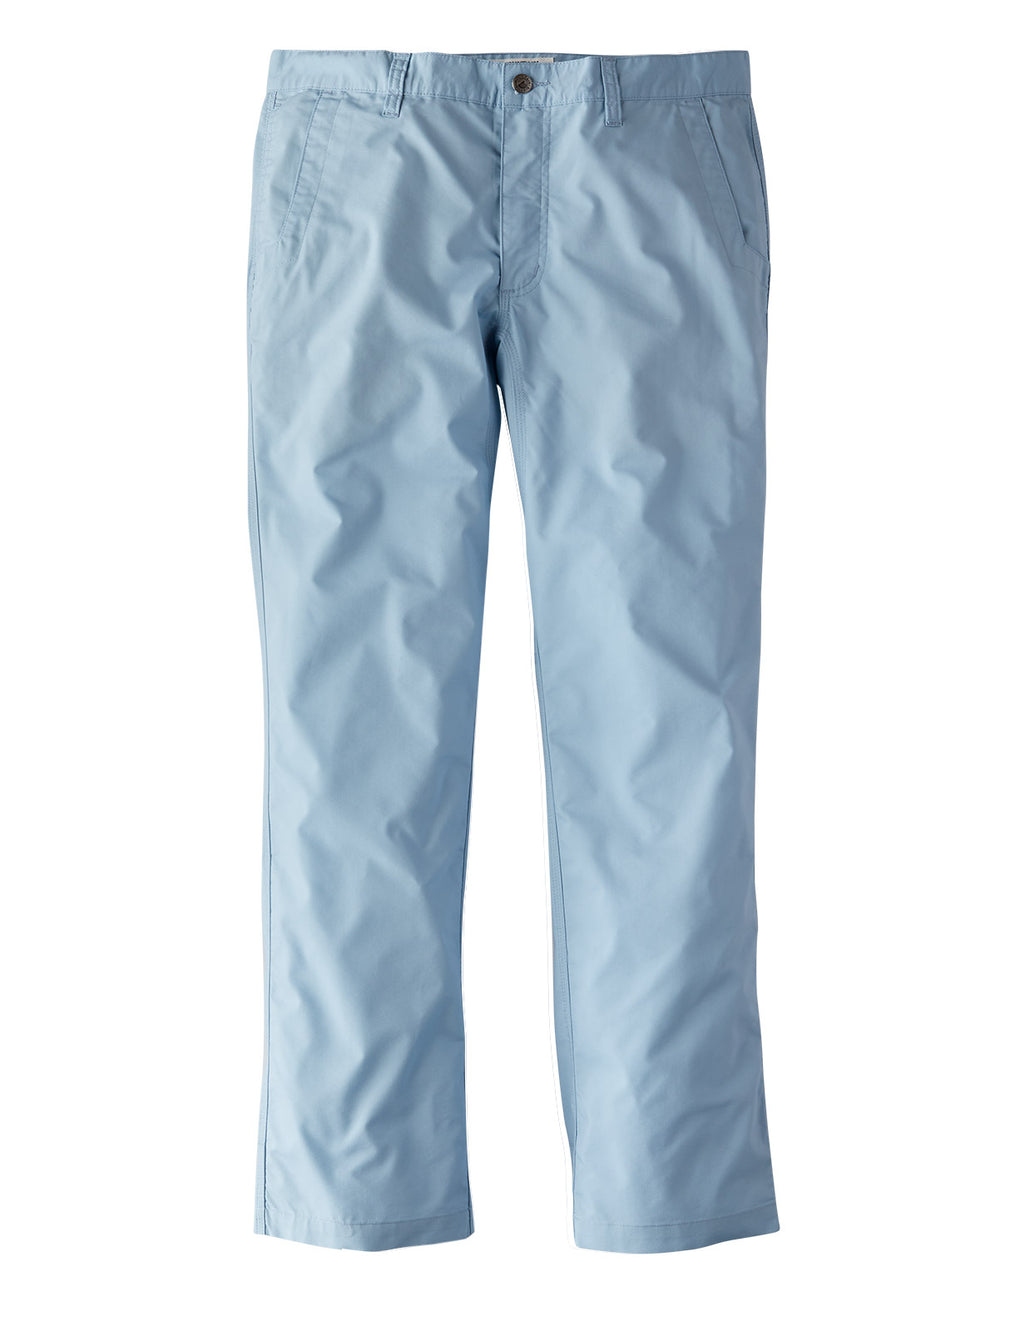 Men's Relaxed Fit Stretch Poplin Pant (Sale)